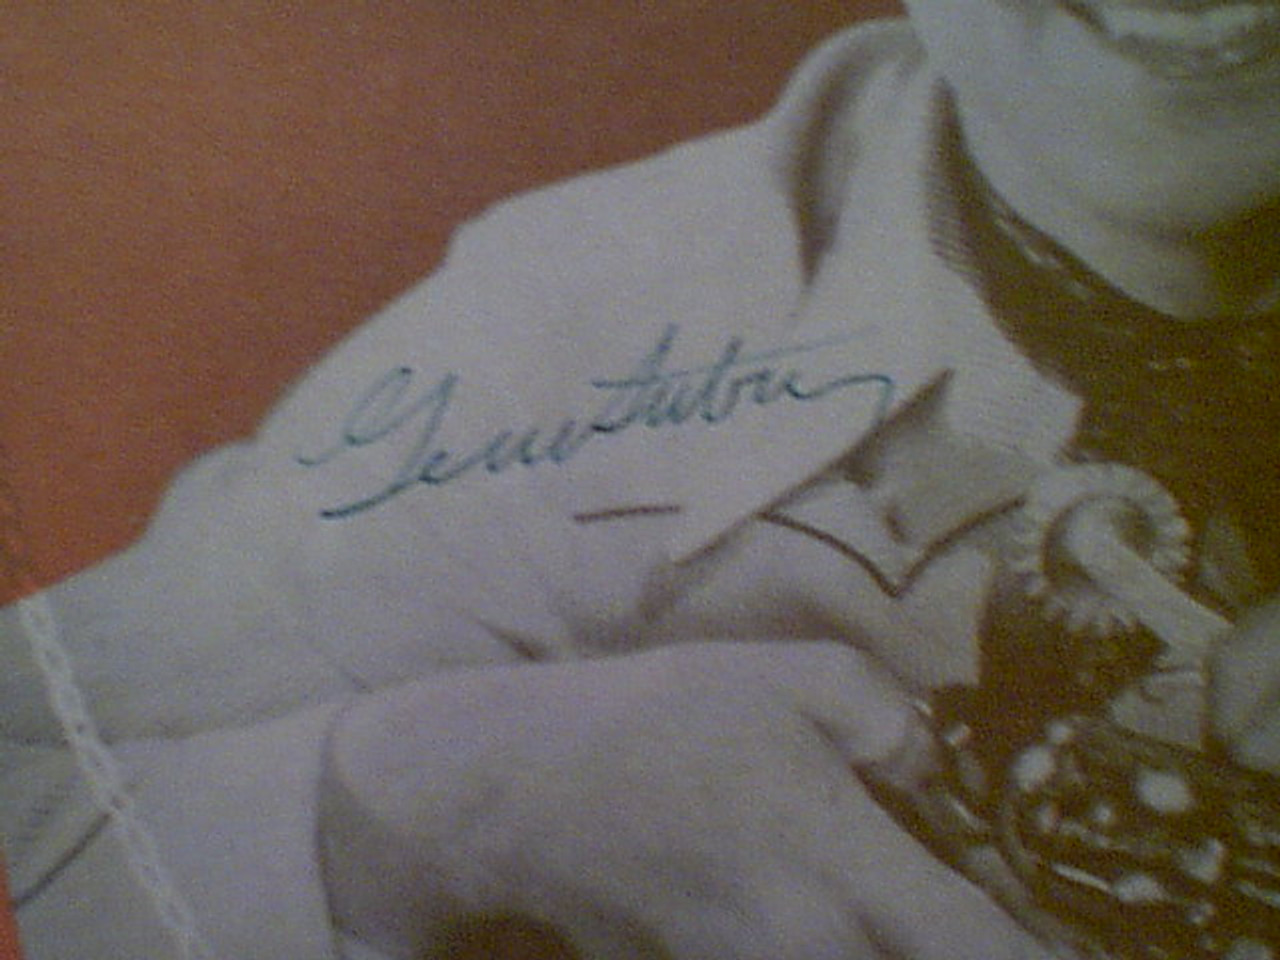 """Autry, Gene """"Songs And Scene From Republic Pictures"""" 1940 Souvenir Songbook Signed Autograph Cover Photo"""